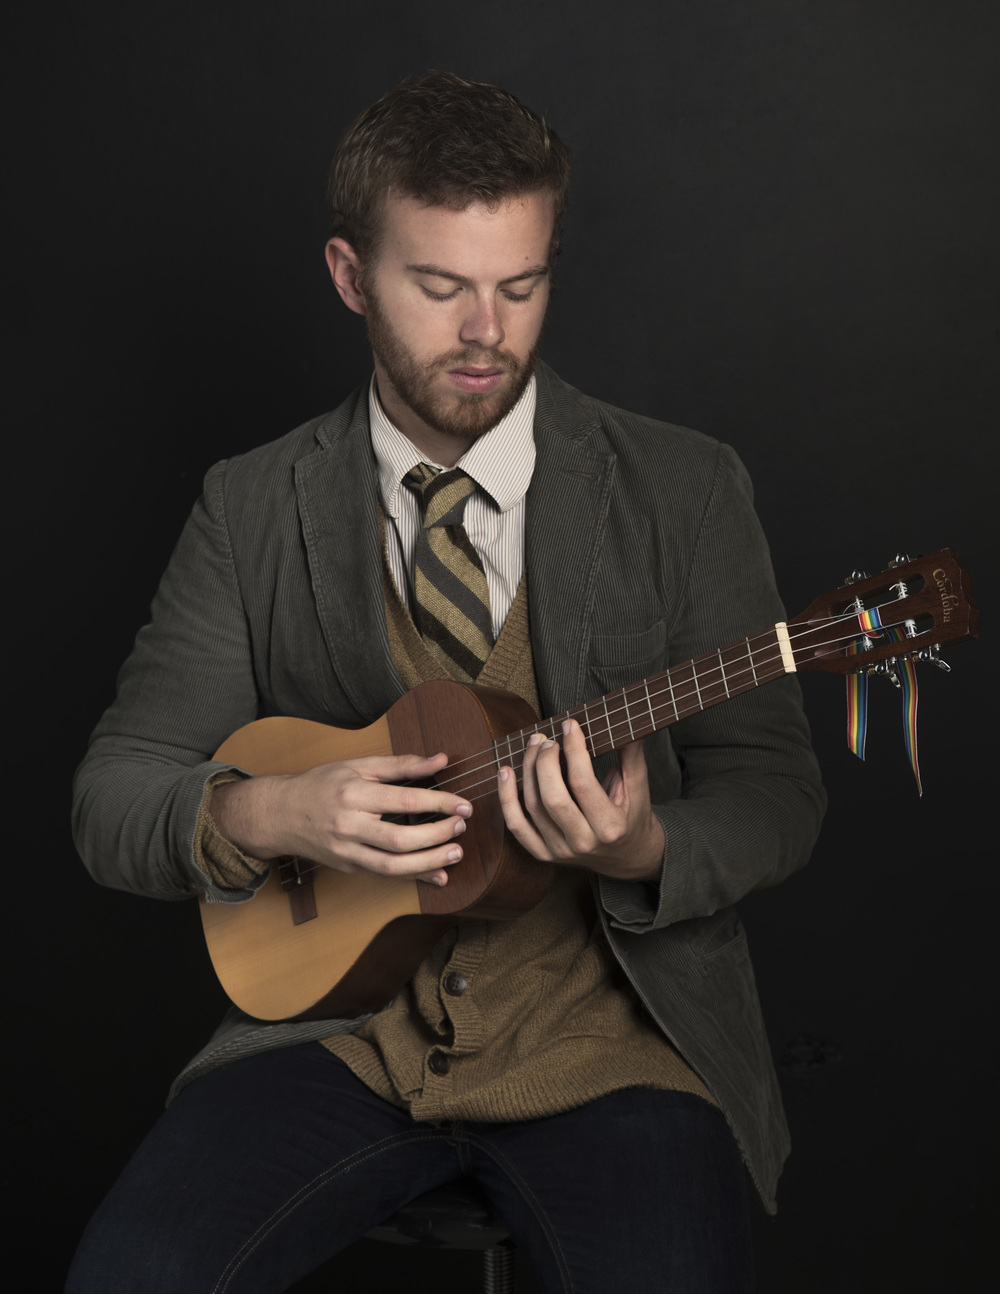 Matthew Cox Viola, Ukulele, Voice, Composition Matthew Cox completed his Bachelors of Music degree in viola performance at the Eastman School of Music in 2014 and will spend the upcoming year exploring music and technology through the University of Rochester's Kauffman Entrepreneurial Year.